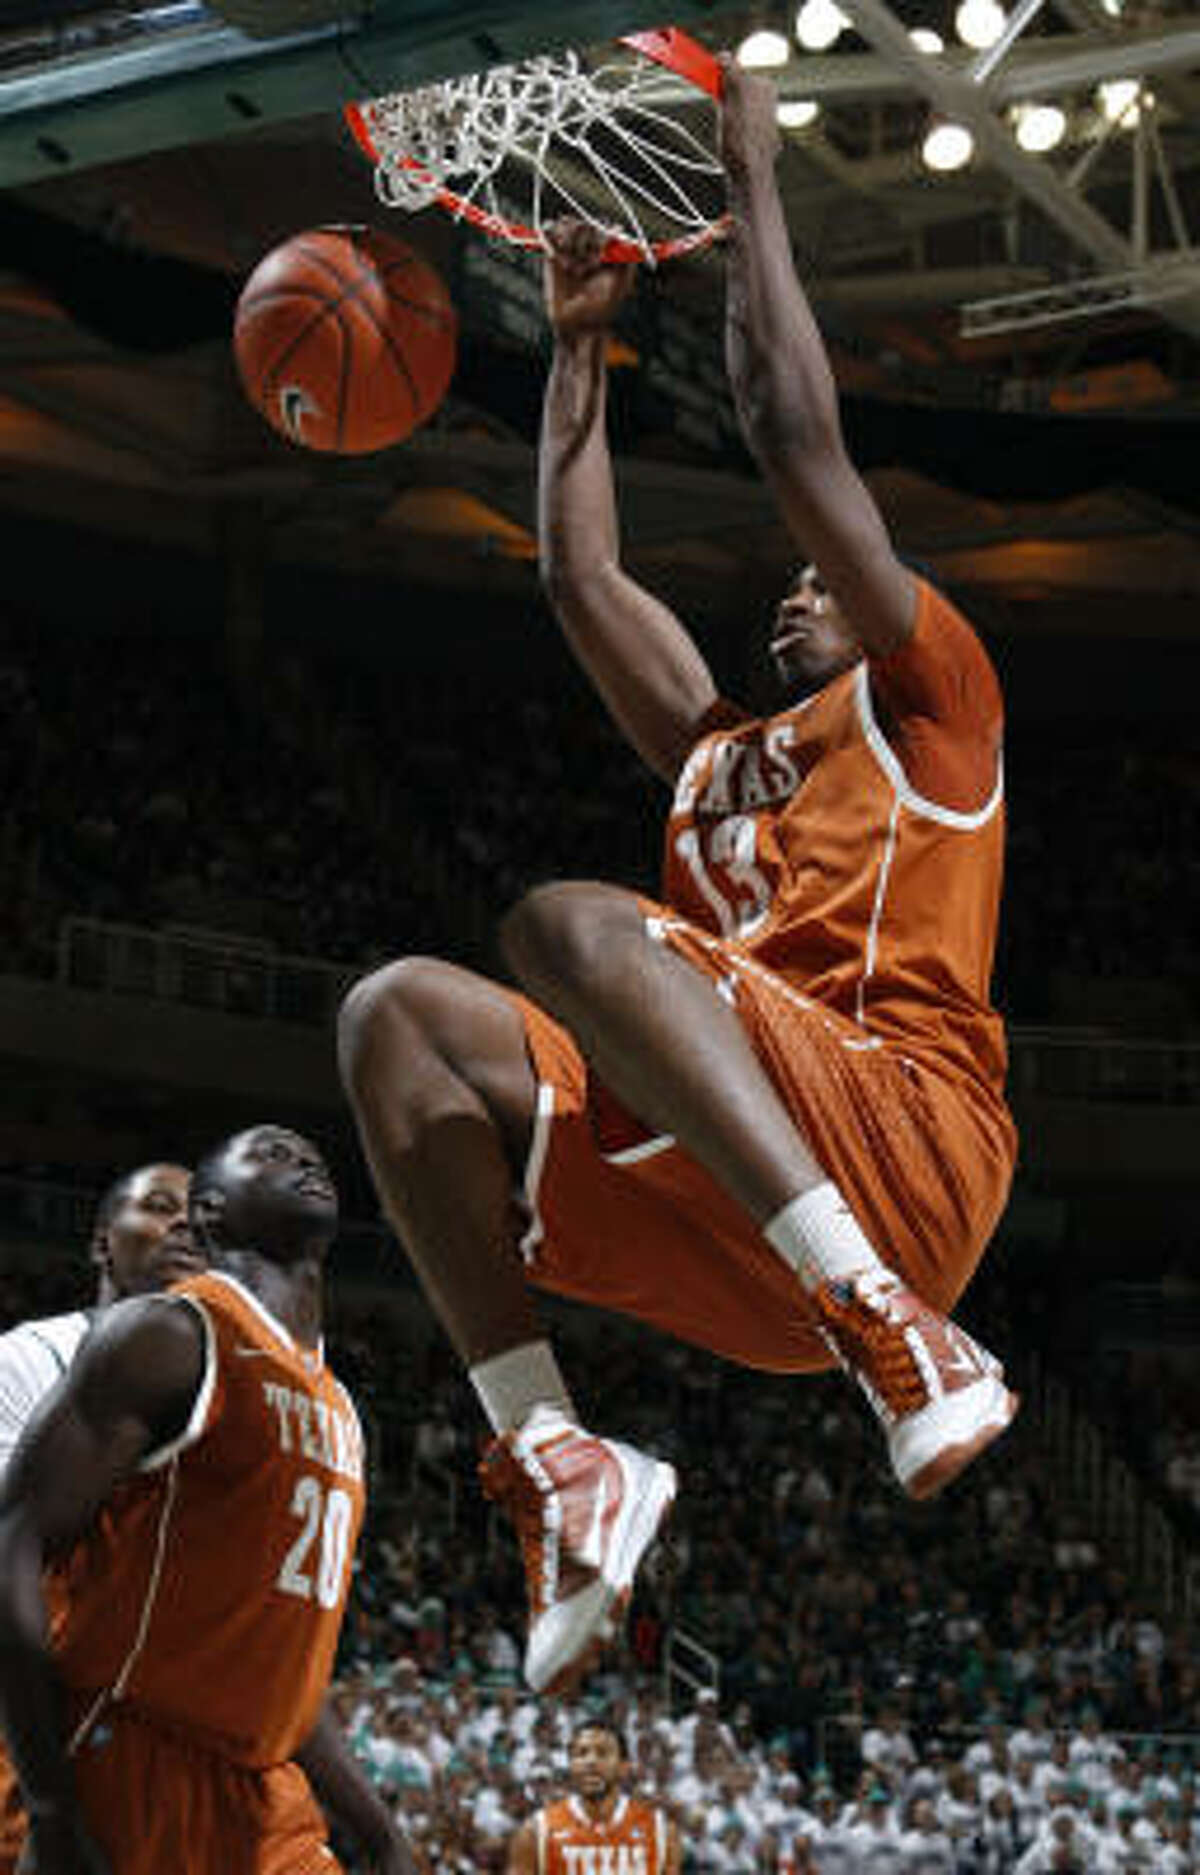 Texas' Tristan Thompson dunks over teammate Alexis Wangmene and Michigan State's Derrick Nix.